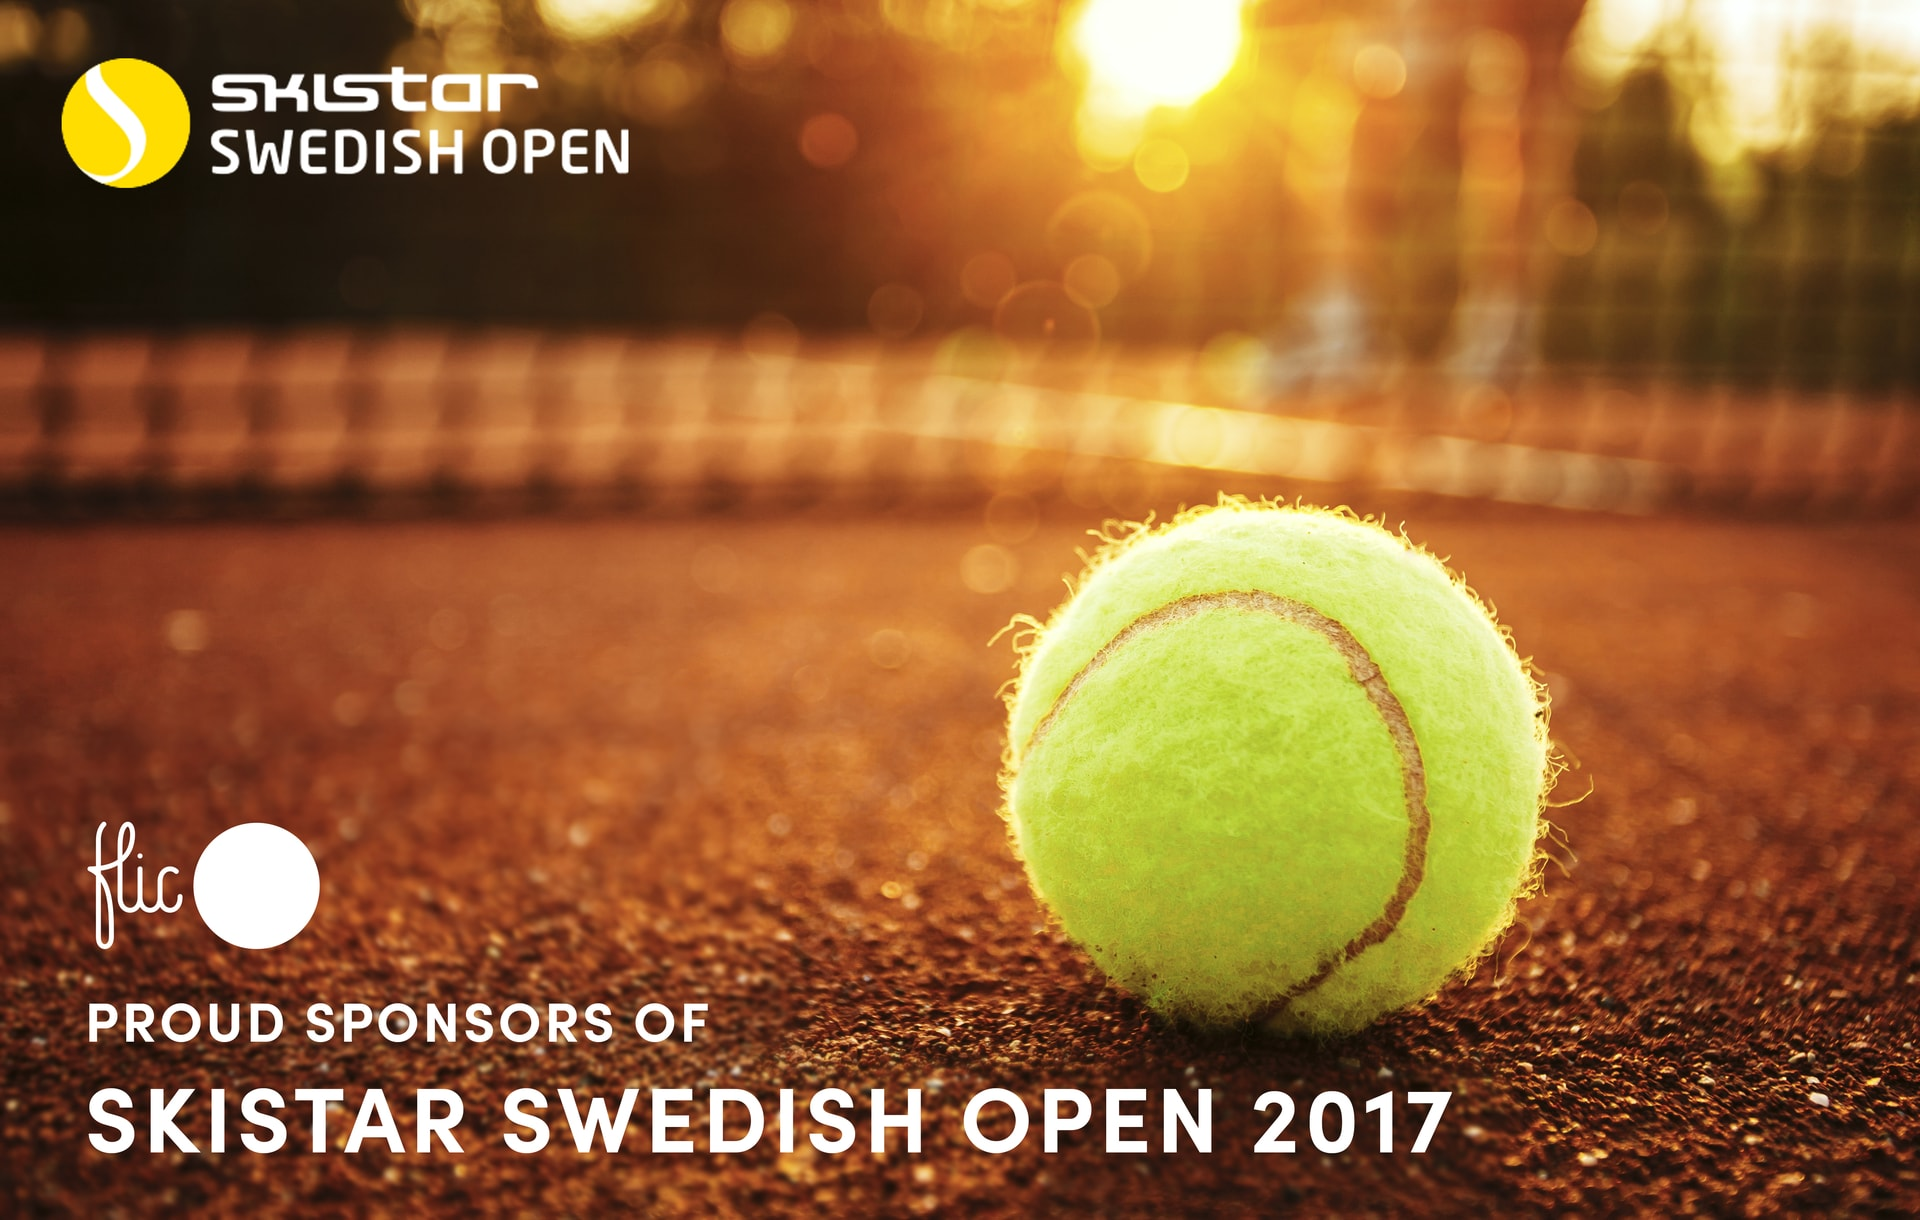 Flic - sponsors of Swedish Open